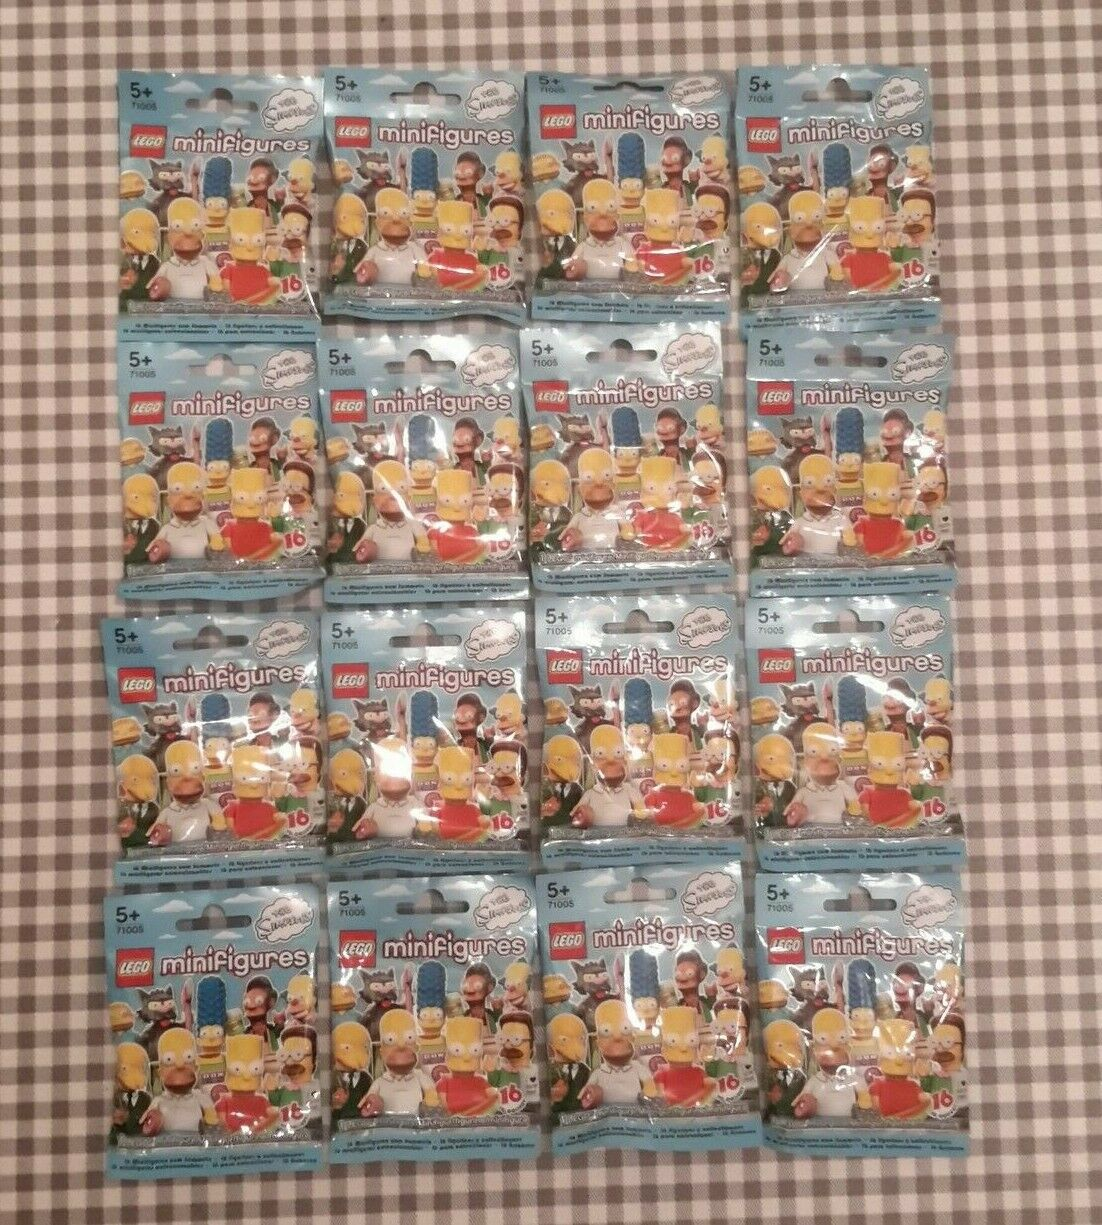 Lego minifigures simpsons series 1 (71005) complete set of 16 new factory sealed